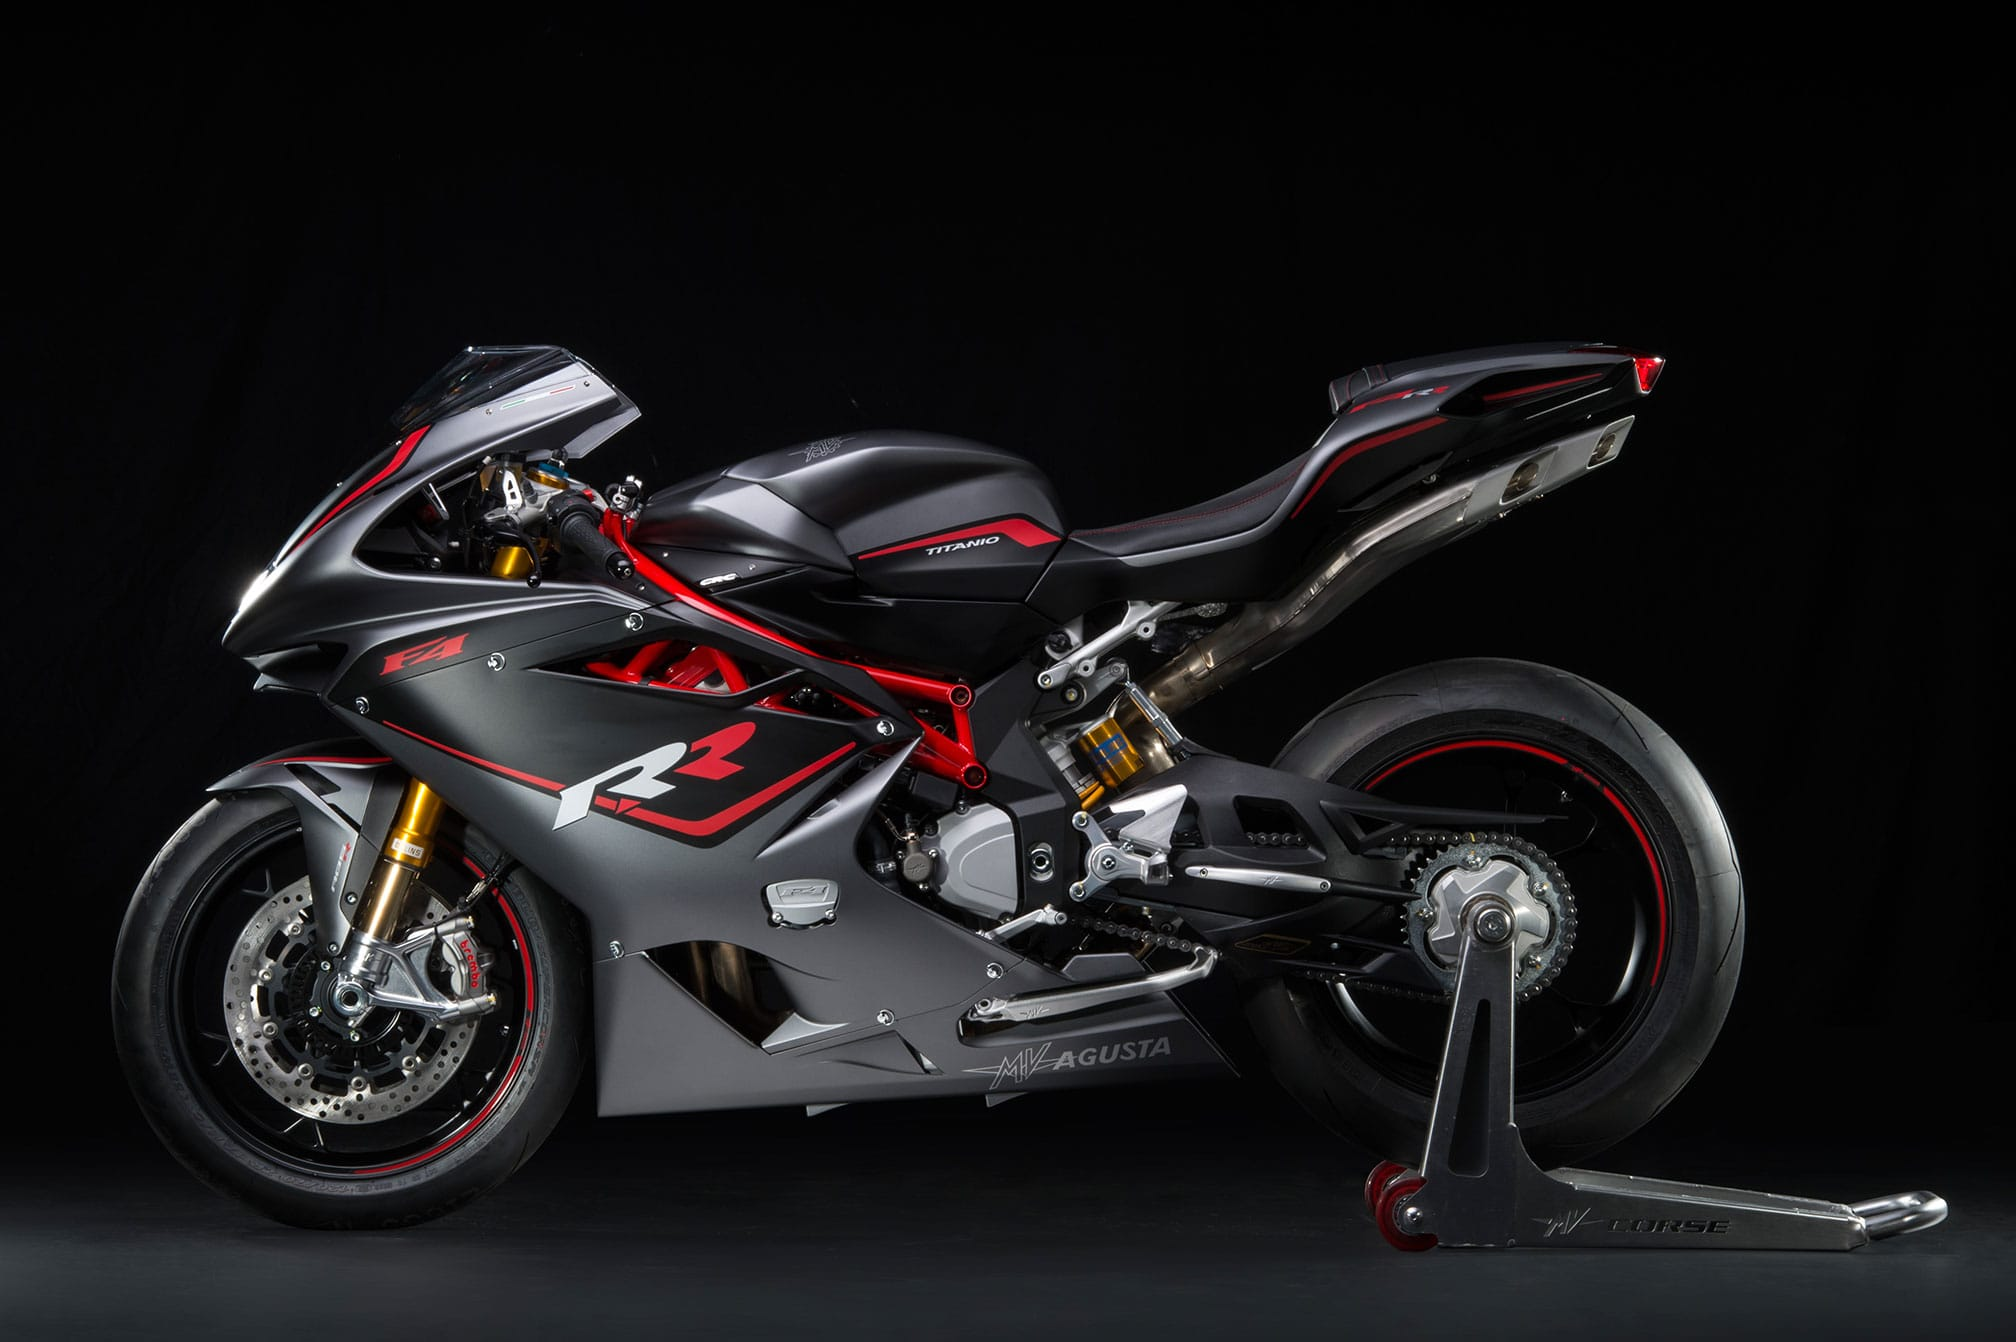 MV Agusta F4 CC Widescreen for desktop